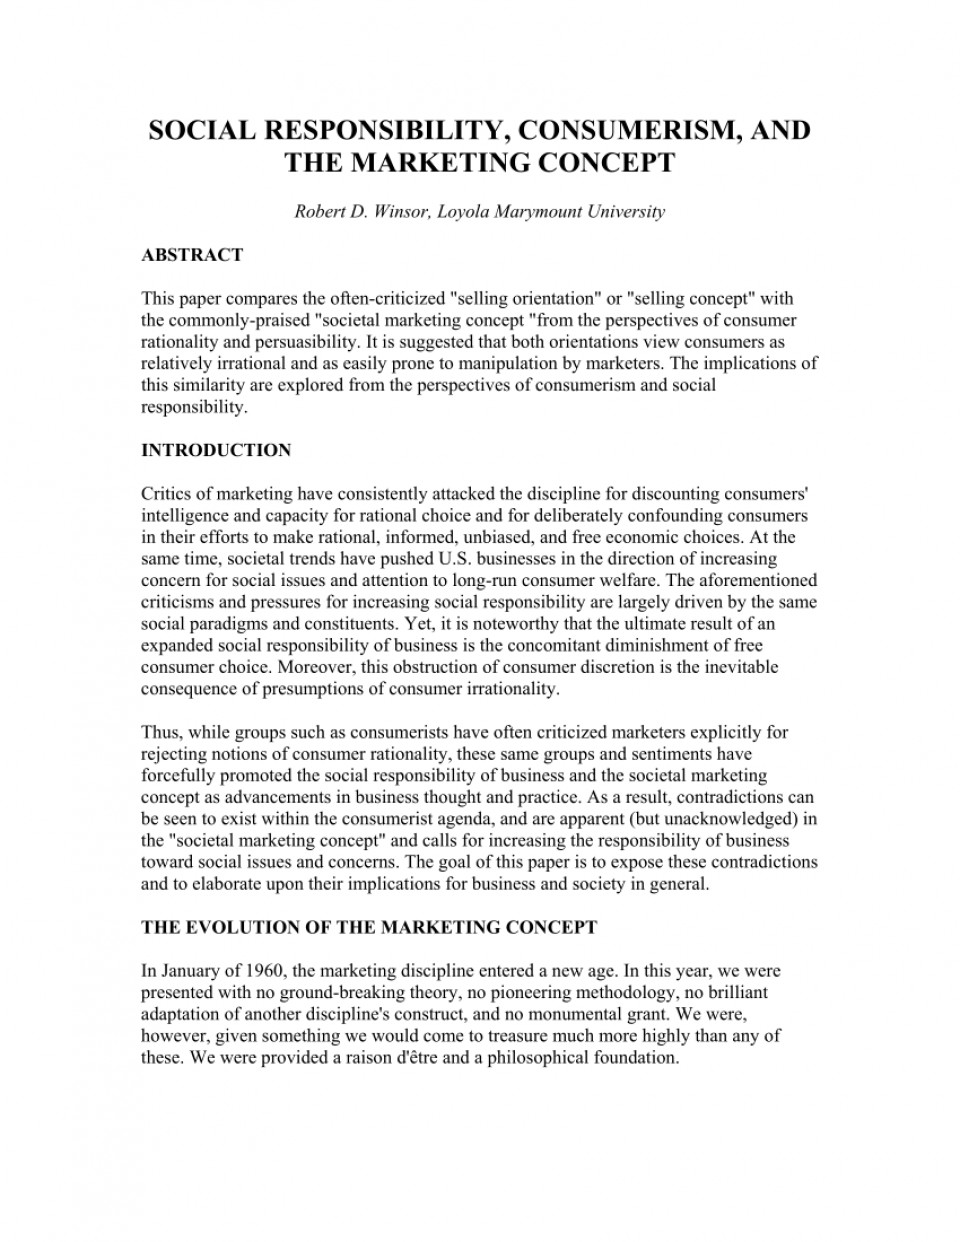 023 Research Paper Largepreview Best Topics For Unique Marketing 960